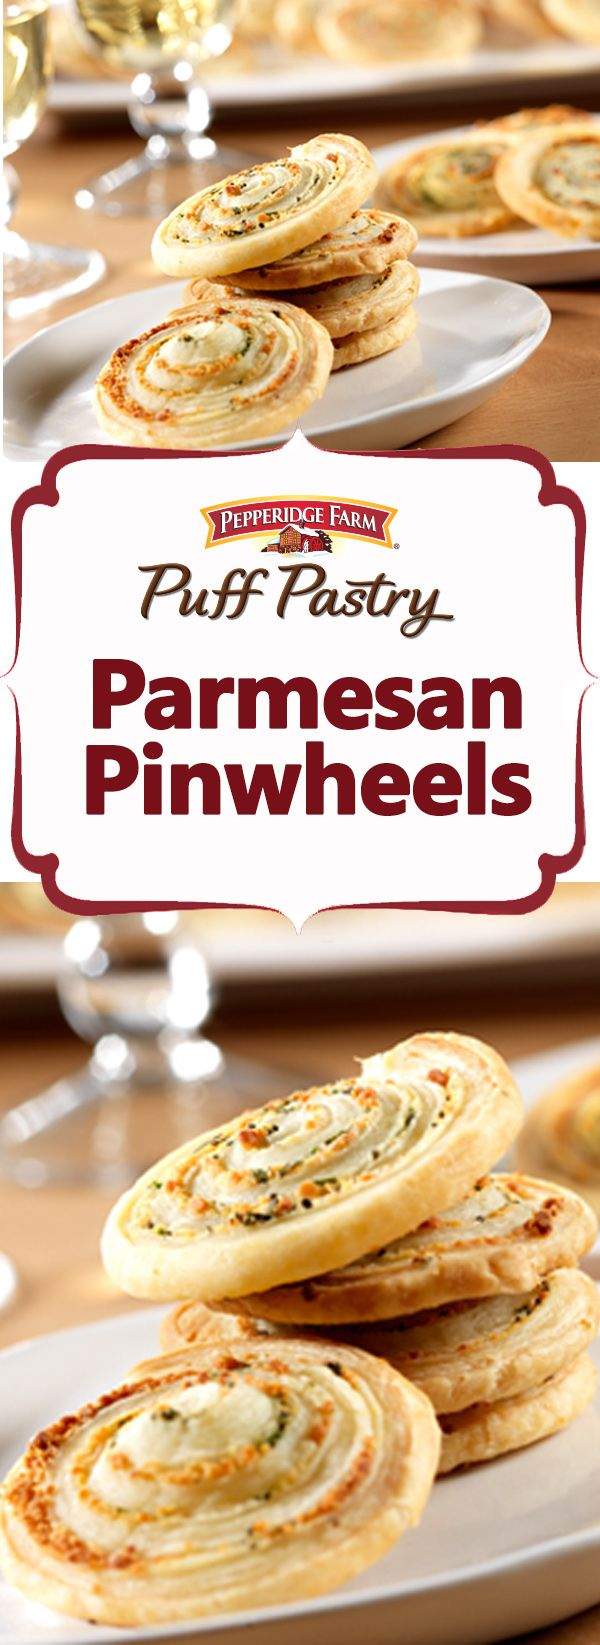 1000+ ideas about Puff Pastry Pinwheels on Pinterest.